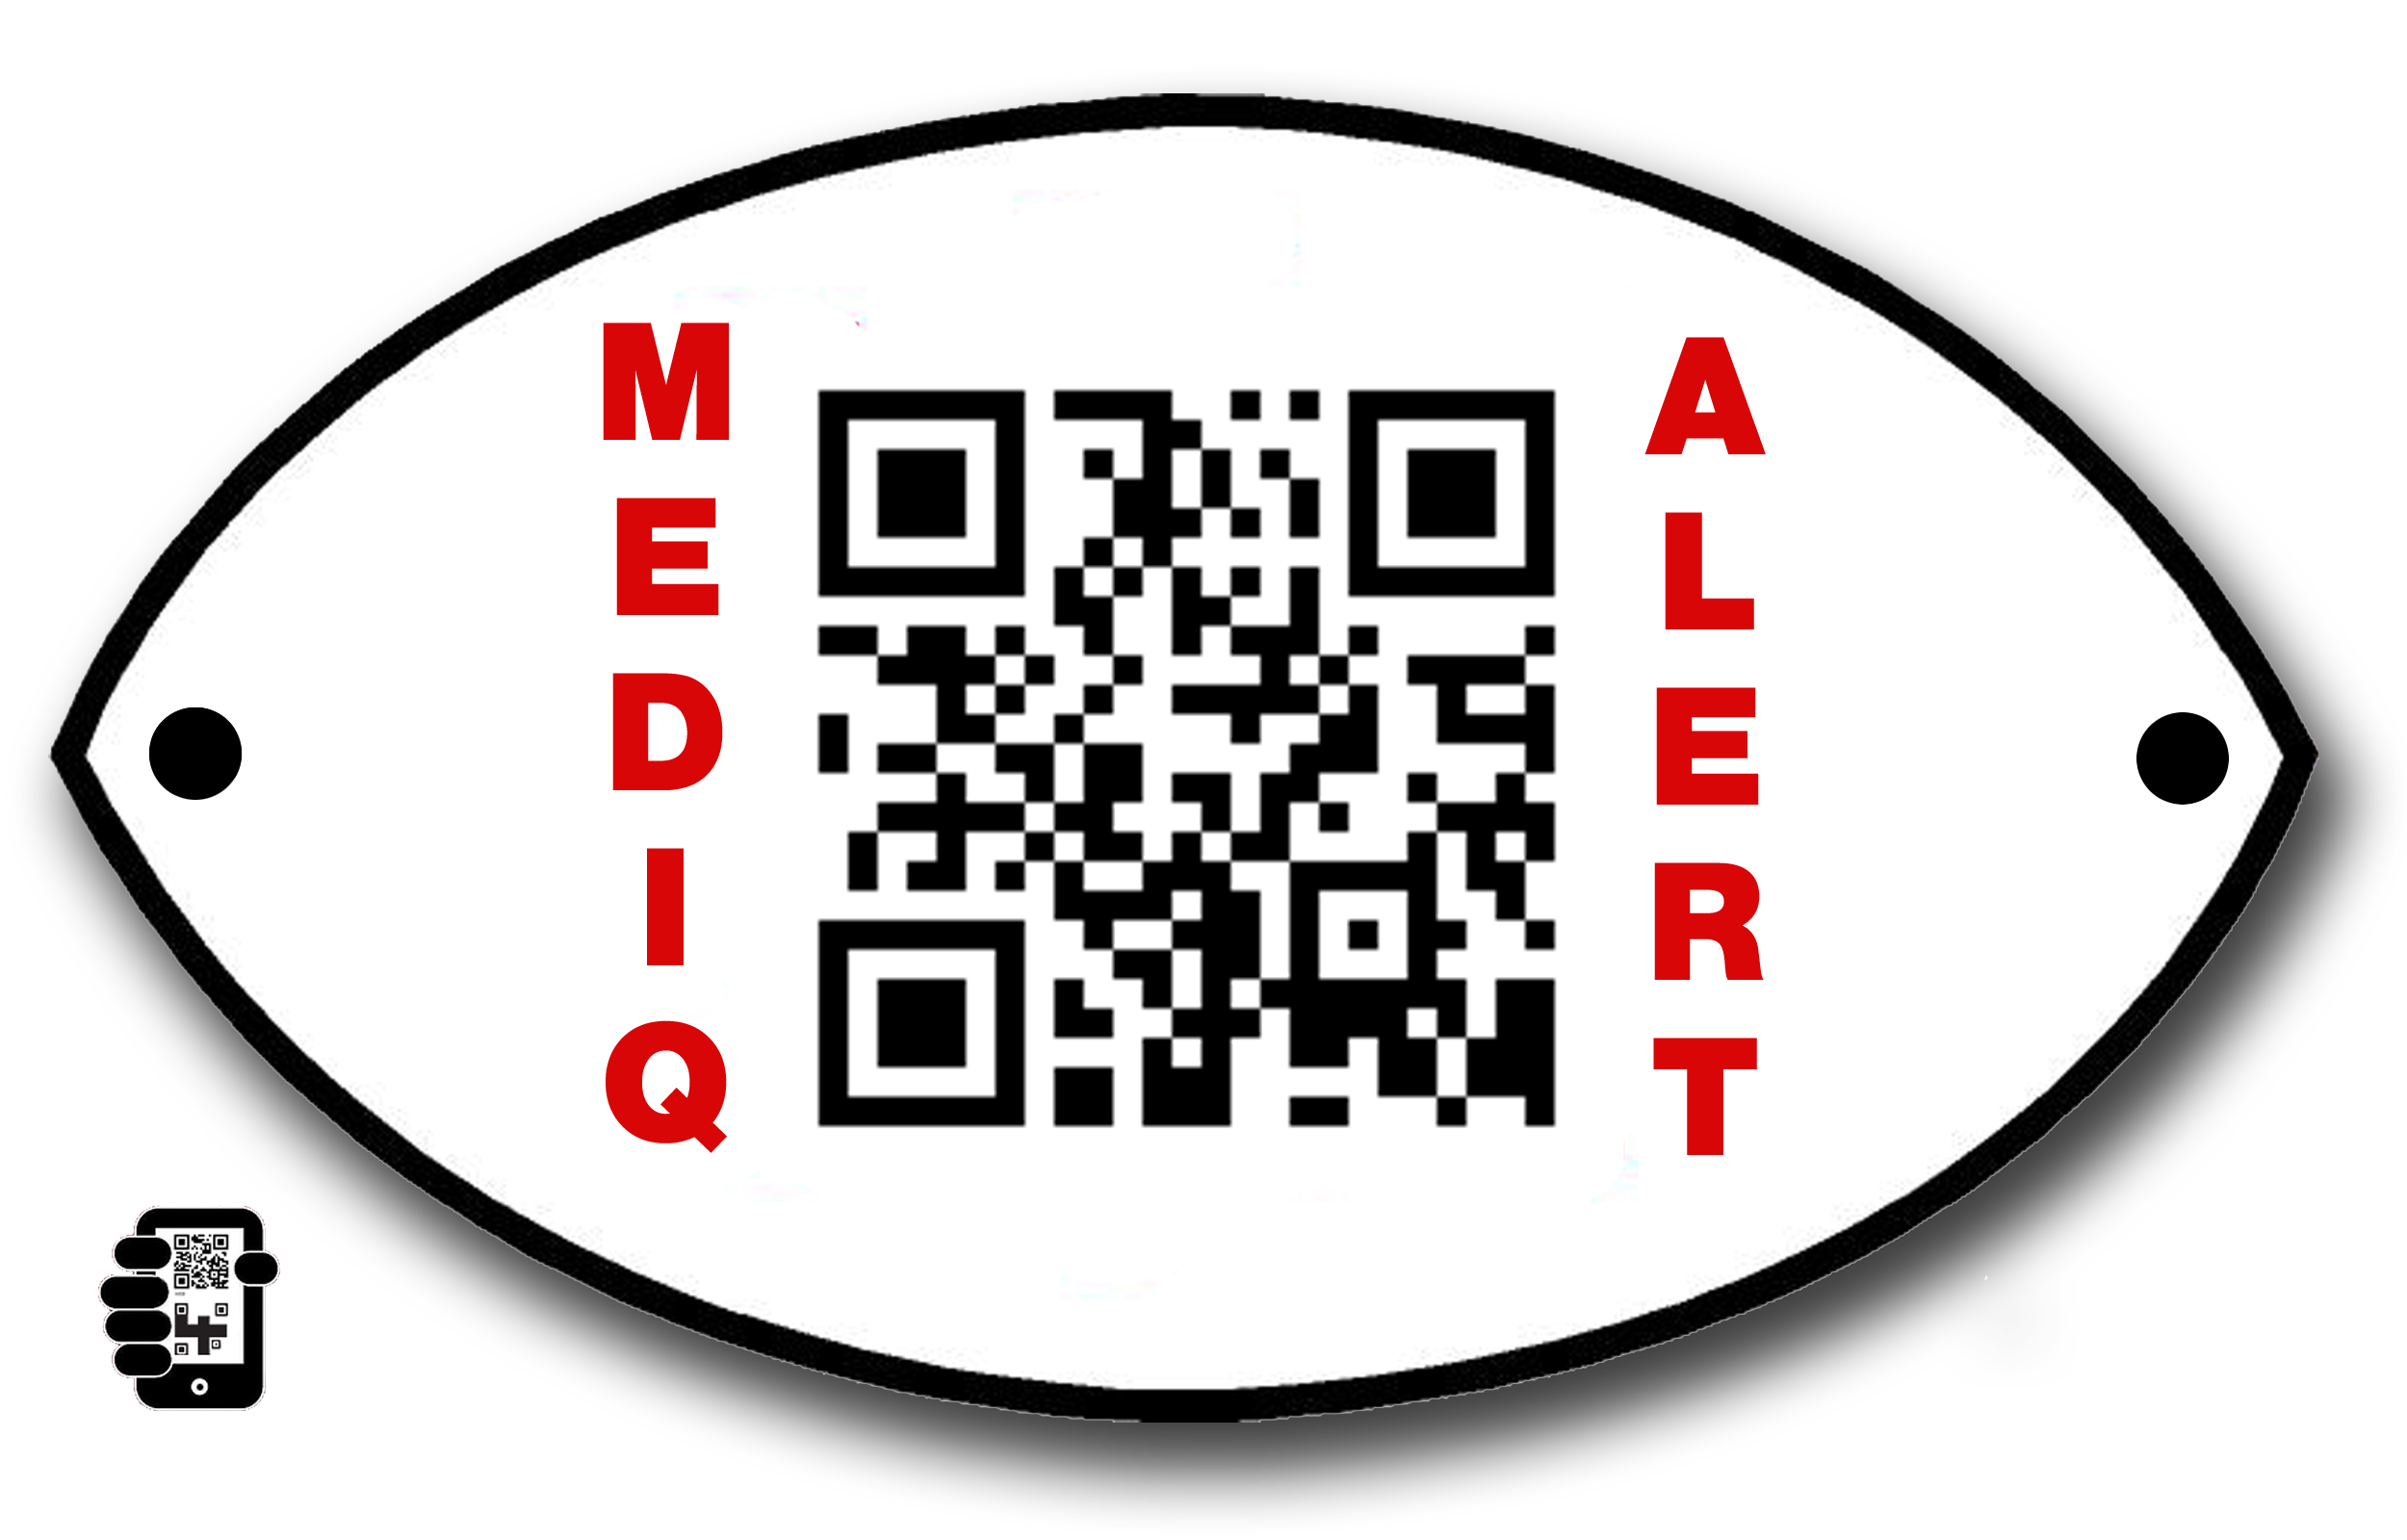 Qr Codes Can Help Those In Times Of Need And When People